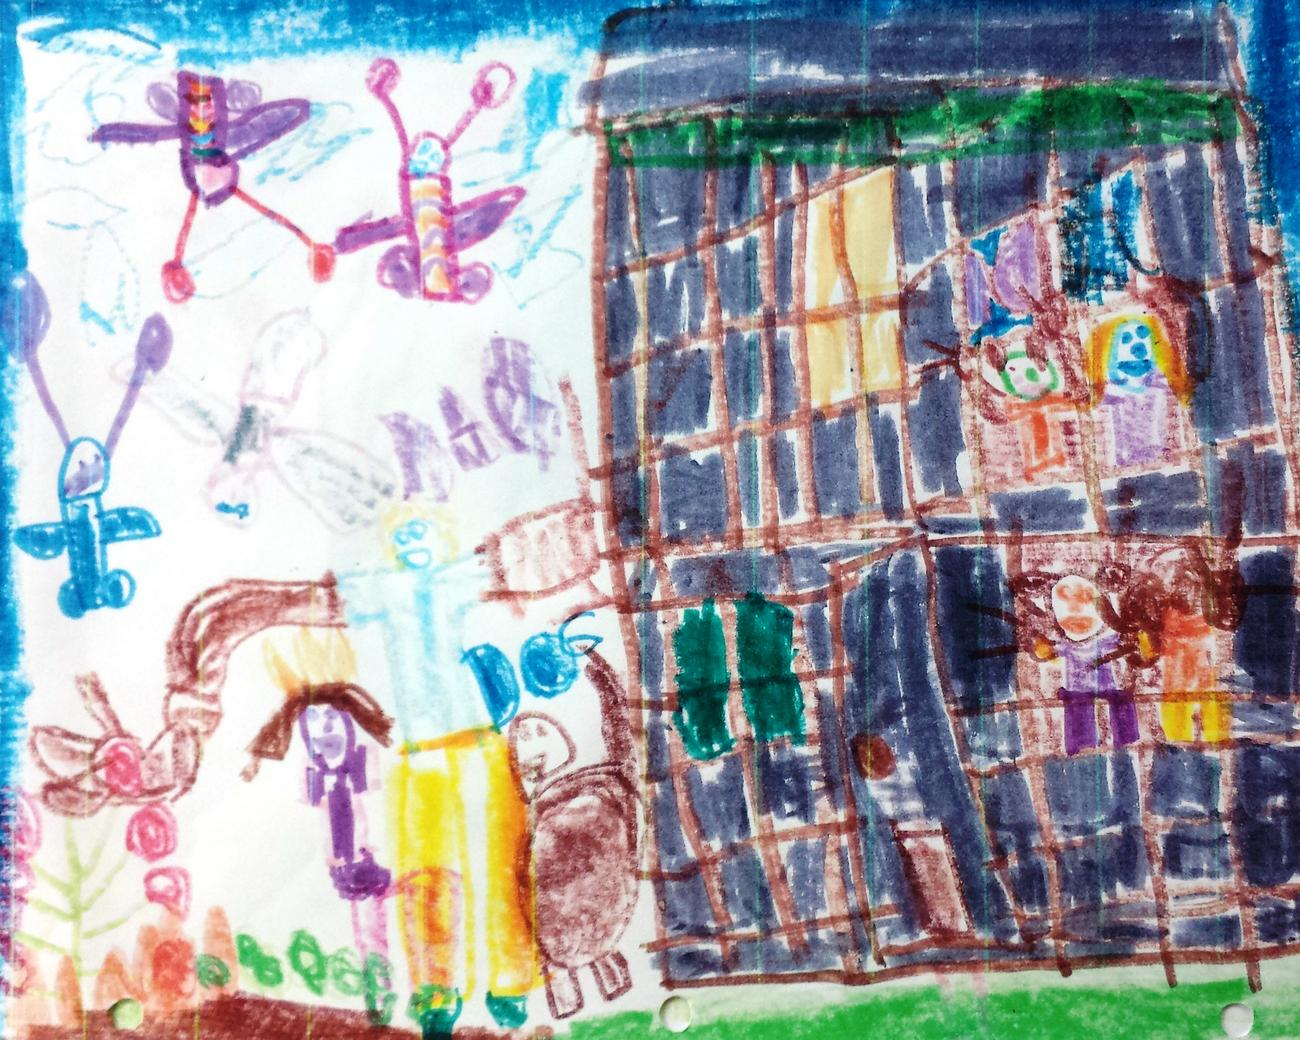 Child's drawing of people and butterflies with multiple body parts